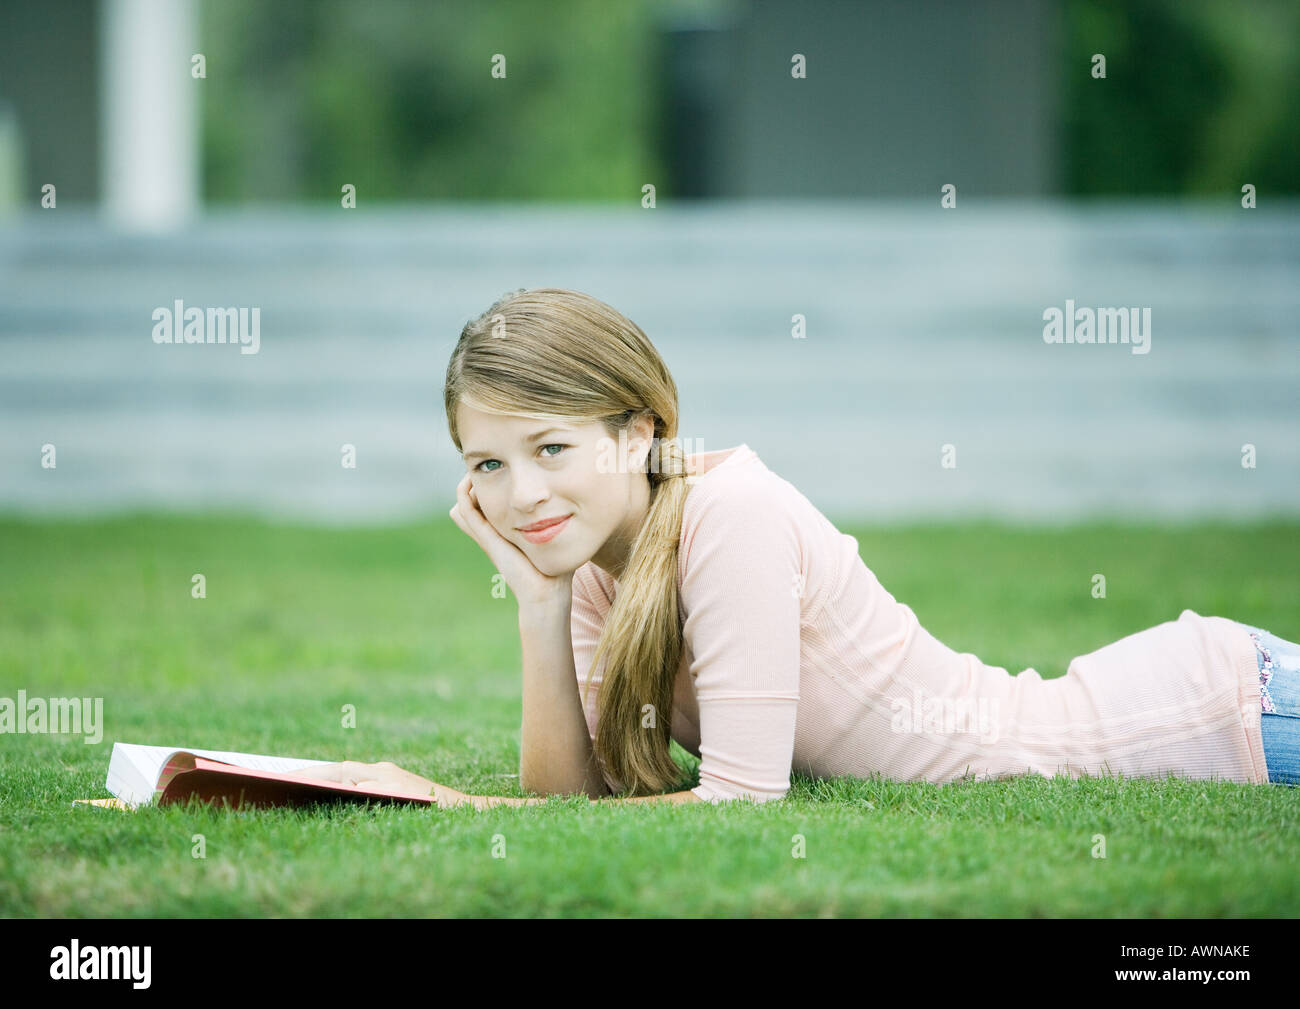 Teen Girl Lying In Grass With Book